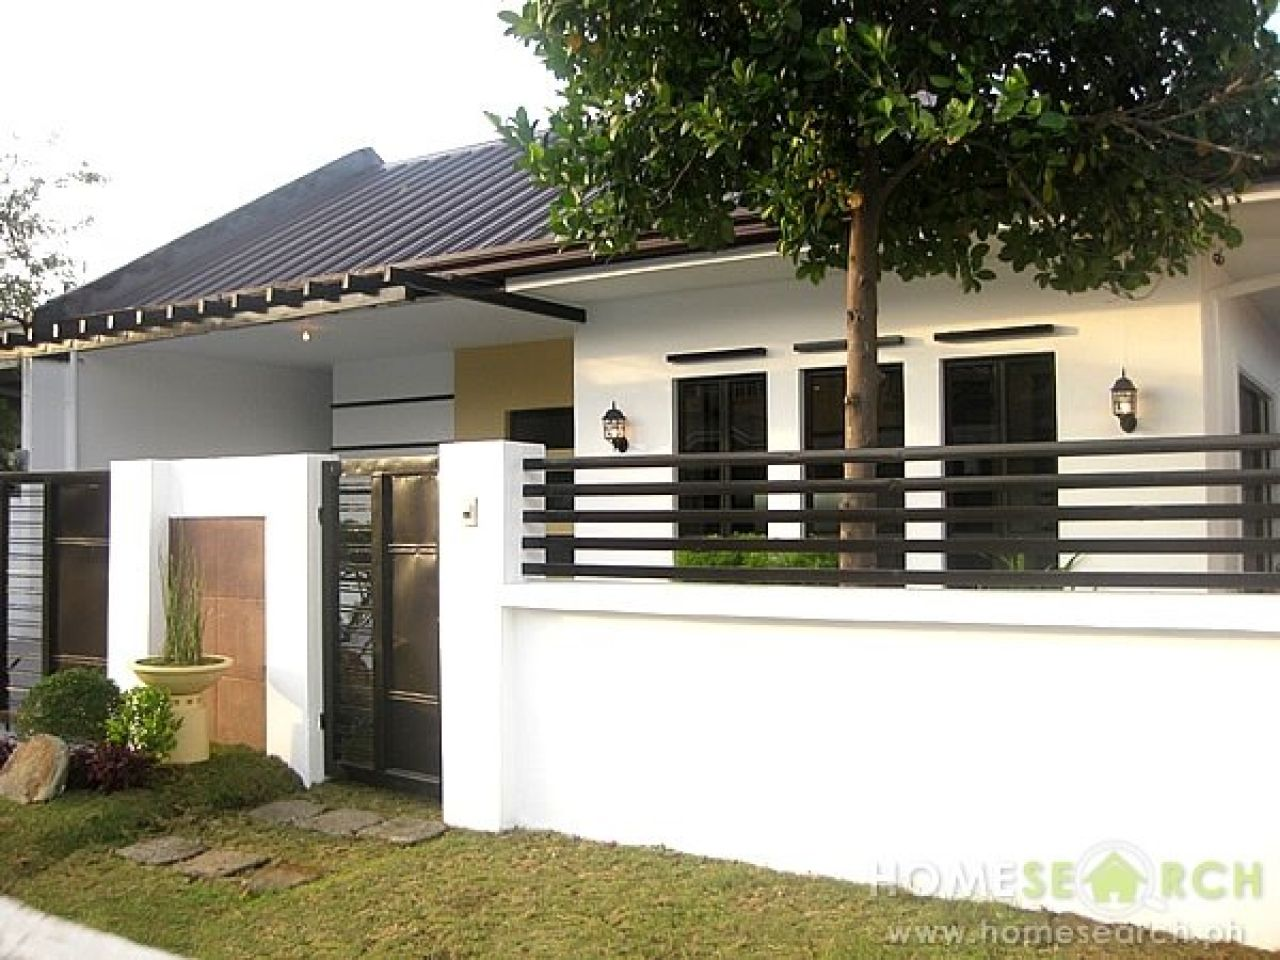 48720dc64ddb1945267481e558dd1063 - 34+ Small Bungalow House Interior Design Philippines  Pictures